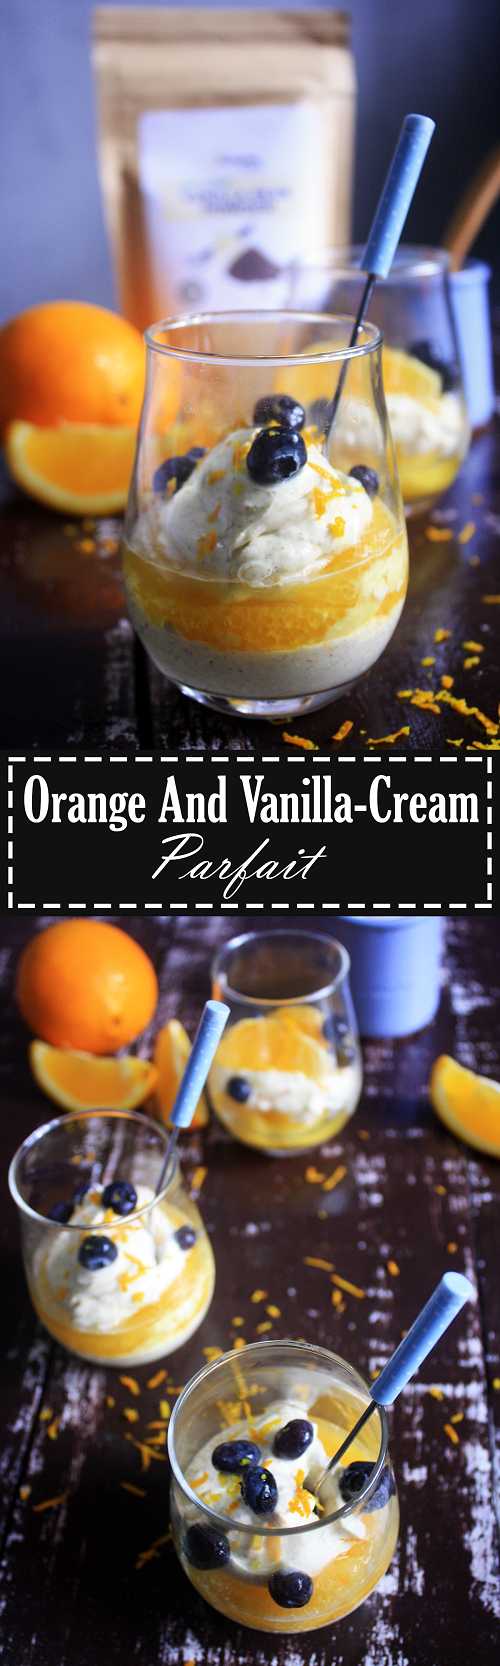 Easy Paleo Orange & Vanilla Cream Parfait Recipe by Summer Day Naturals